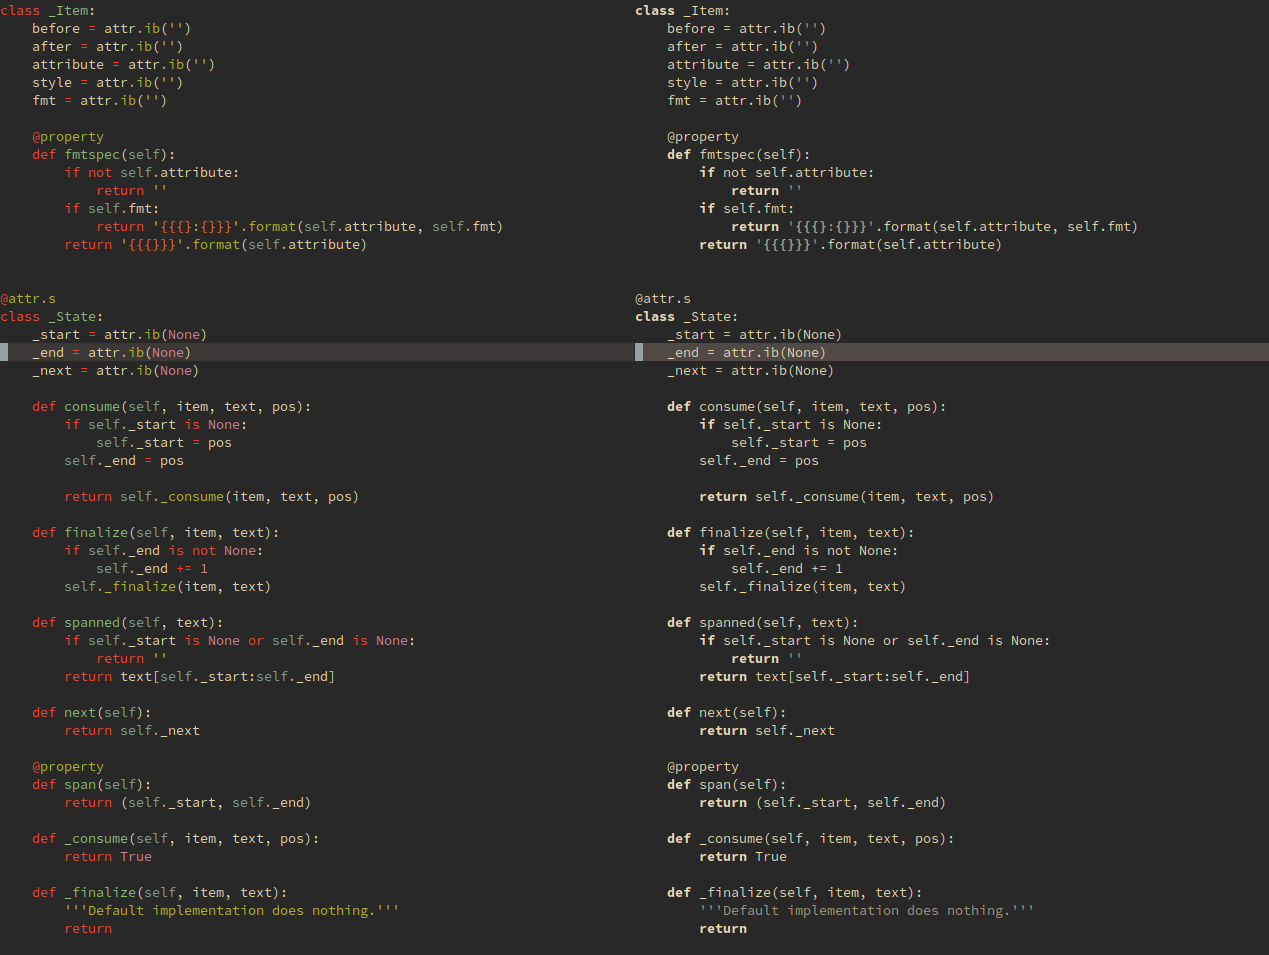 Side-by-side screenshot of same Python code highlighted by Gruvbox and bw.vim